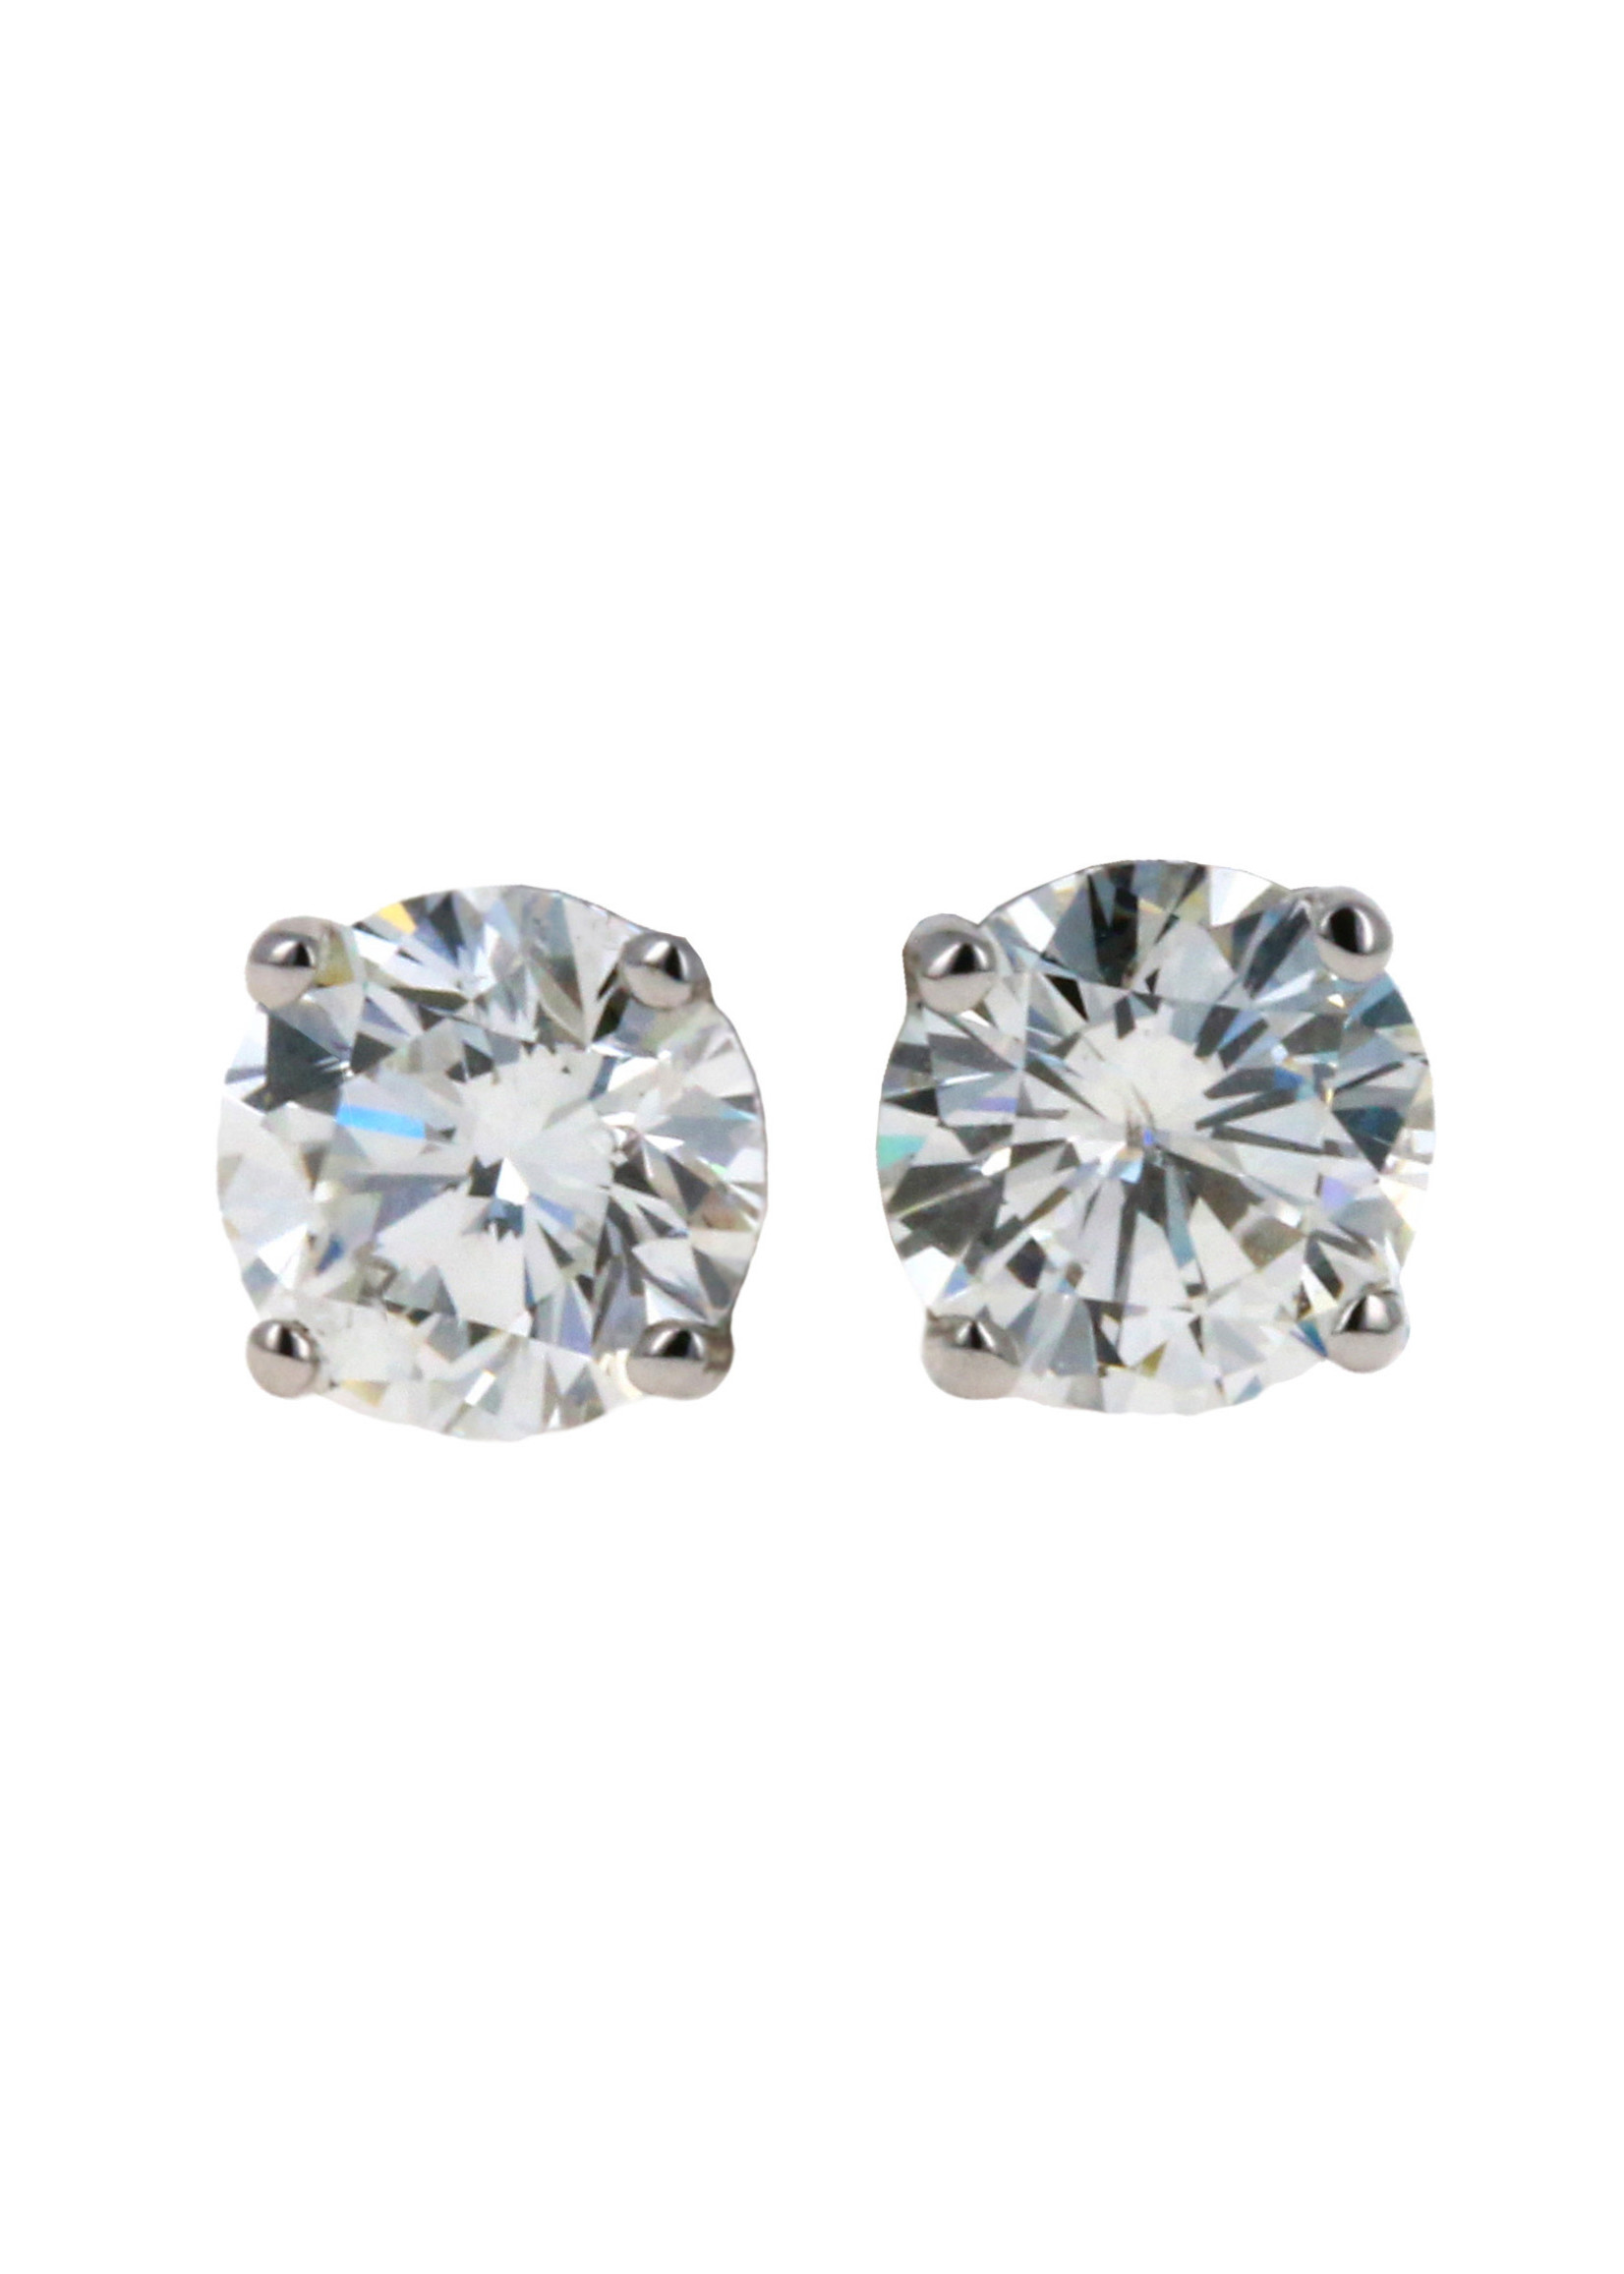 Jewellery ROUND BRILLIANT CUT EARINGS - 0.72 CT EACH / SI-2 / H/ VERY GOOD